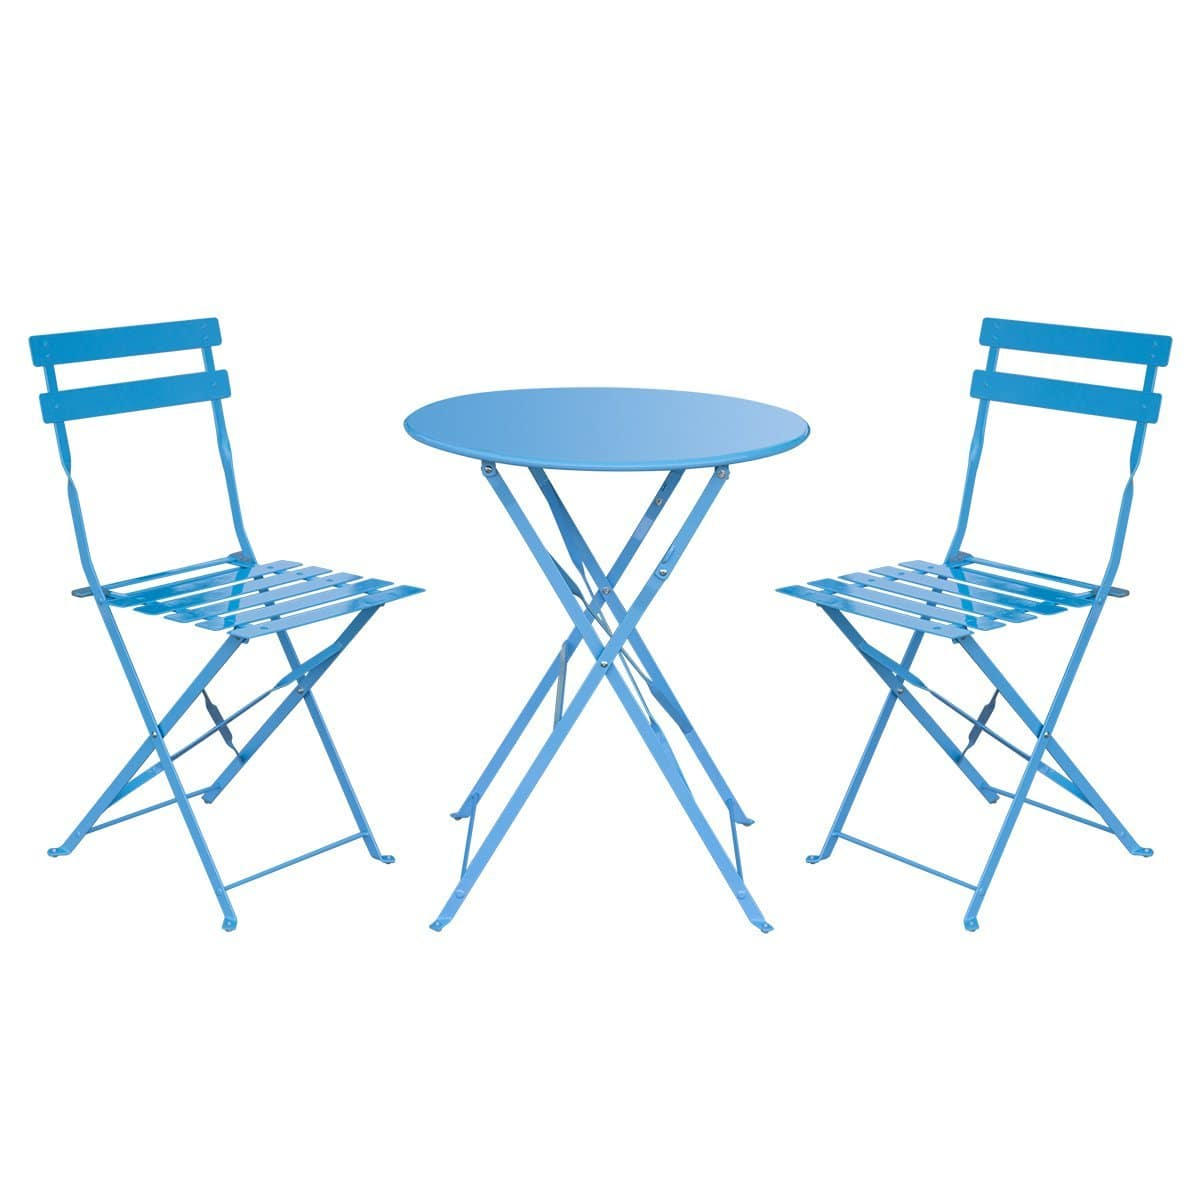 $44.99 HollyHOME Outdoor Balcony Folding Steel Bistro Furniture Sets, Patio 3-Piece of Foldable Table and Chairs, Blue @ amazon